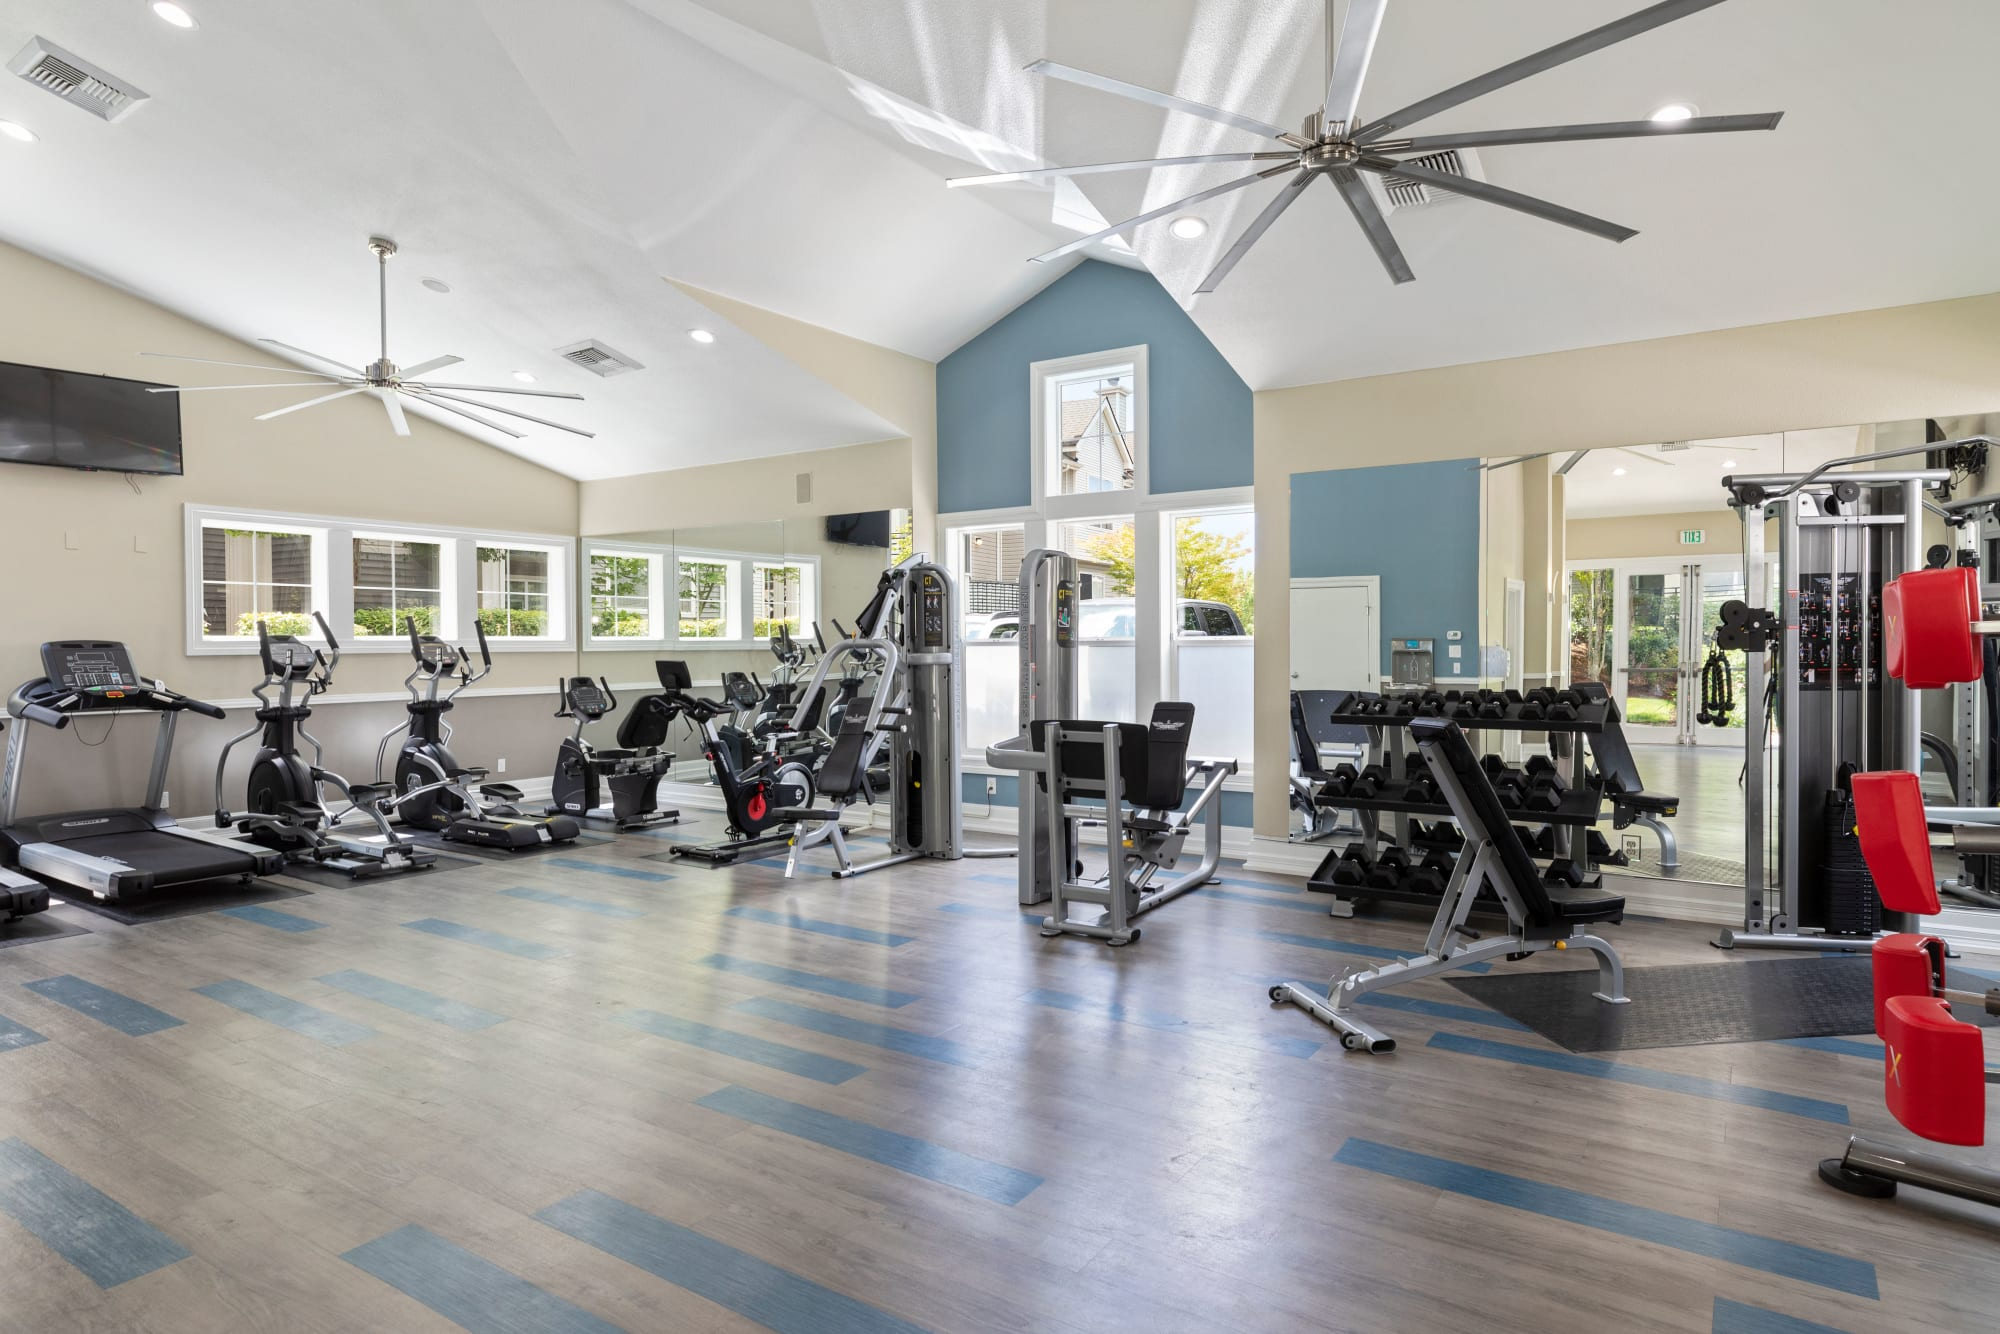 The fully equipped fitness center at HighGrove Apartments in Everett, Washington